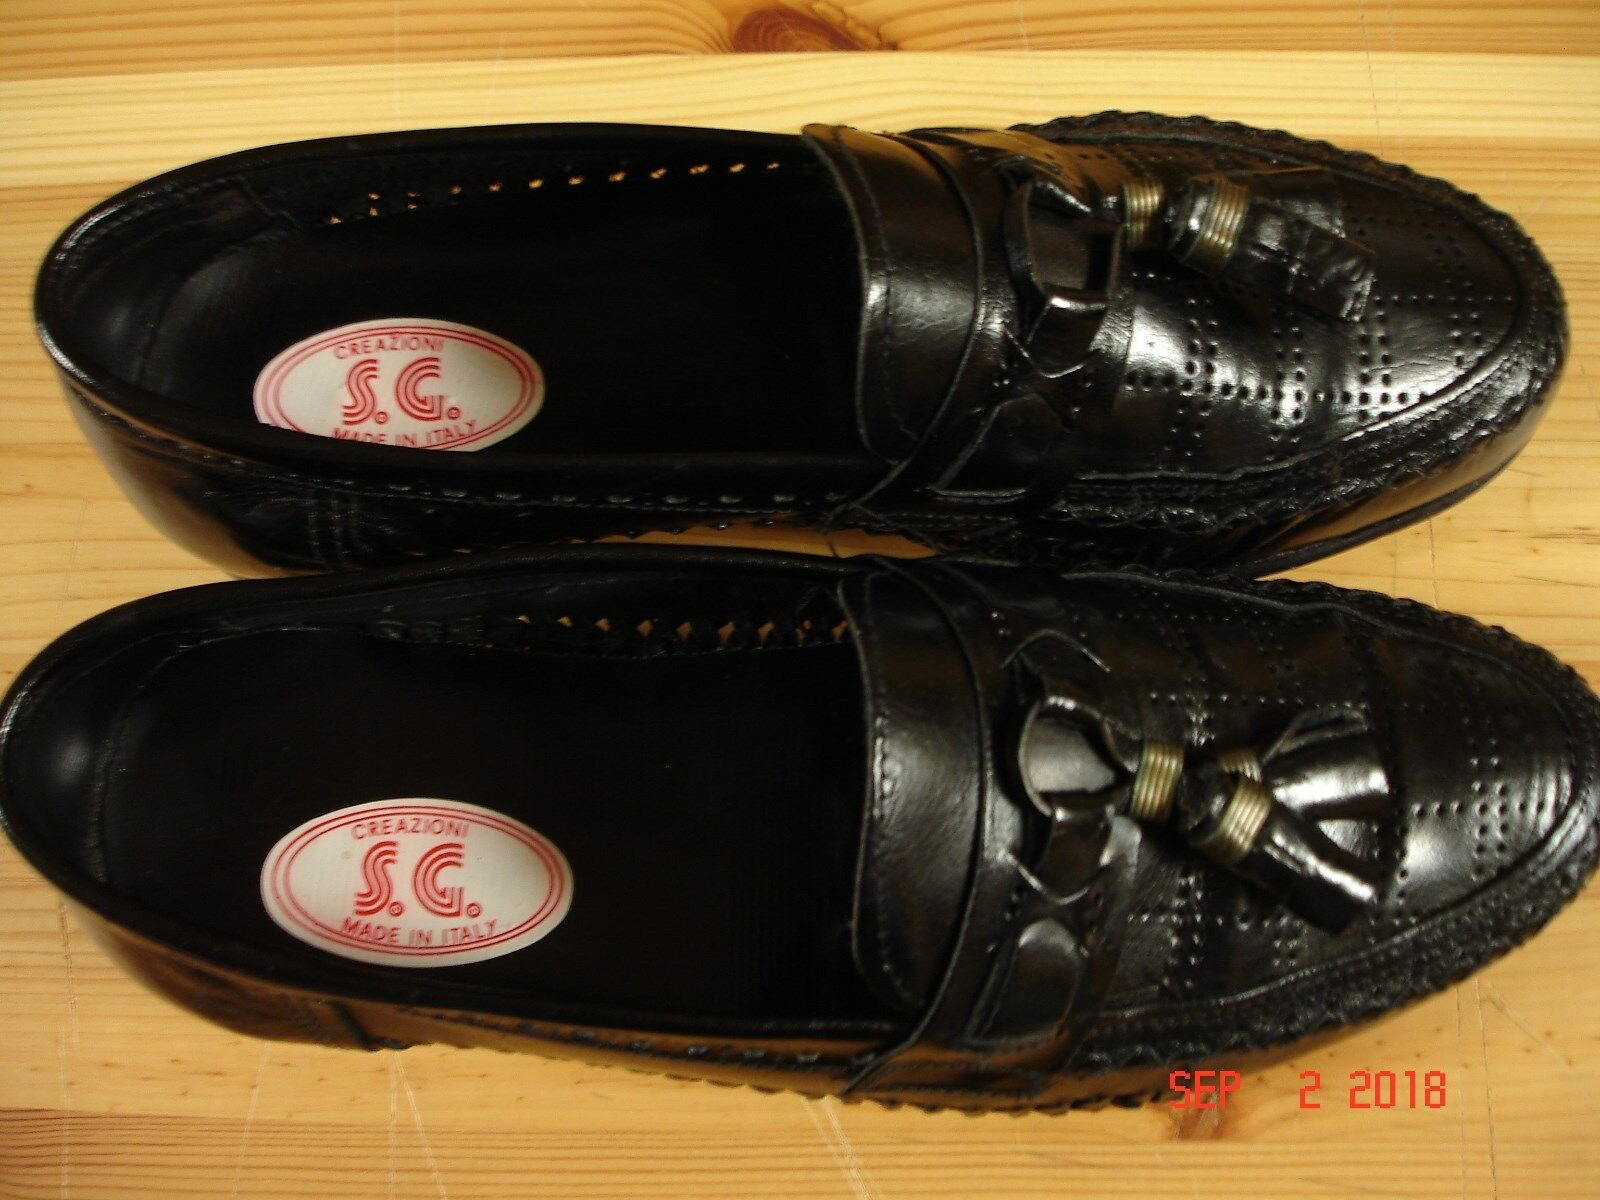 Creazioni Men's 7 - 7.5  Black Leather  in Casual Loafers Shoes Made in  ITALY 5e183c